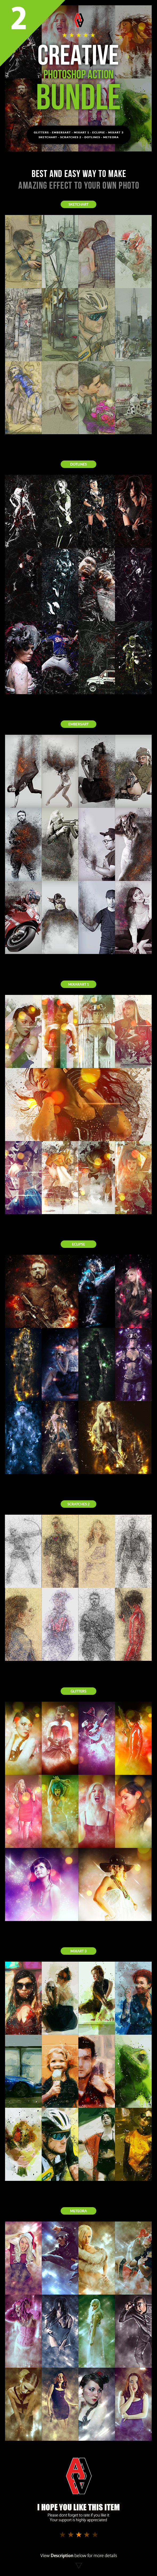 Creative Photoshop Action Bundle 2 - Photo Effects Actions